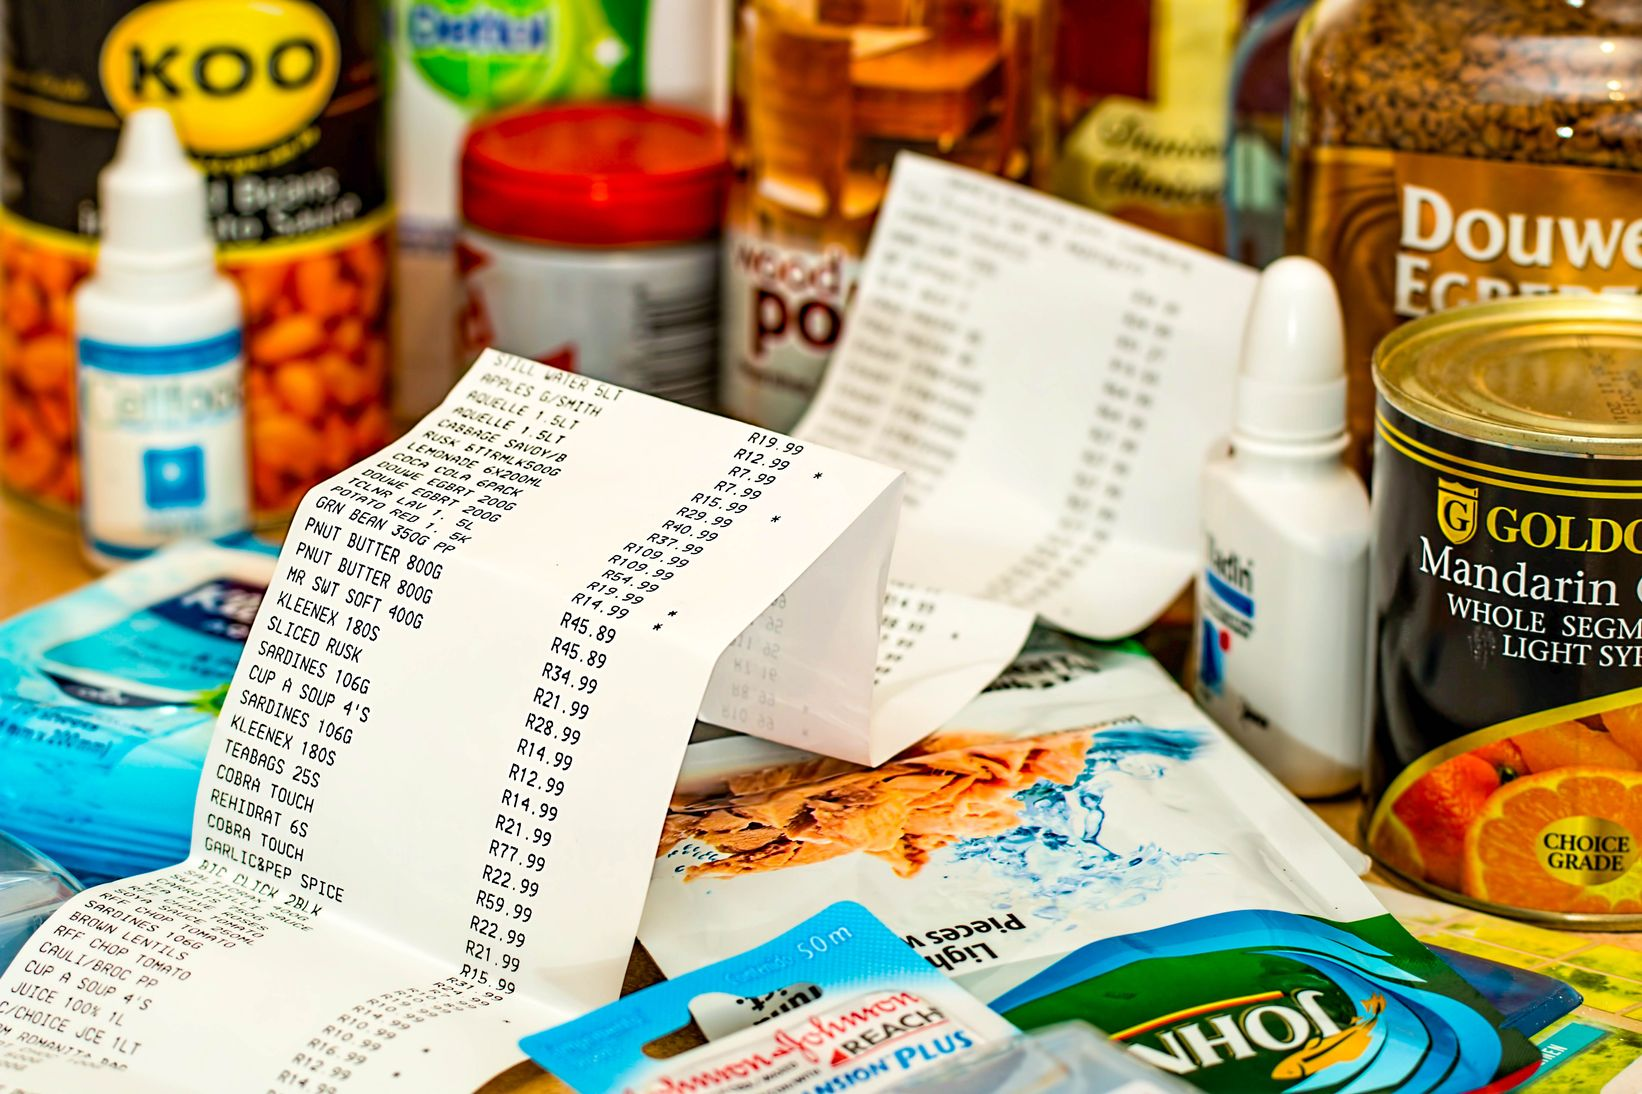 Receipt surrounded by grocery items